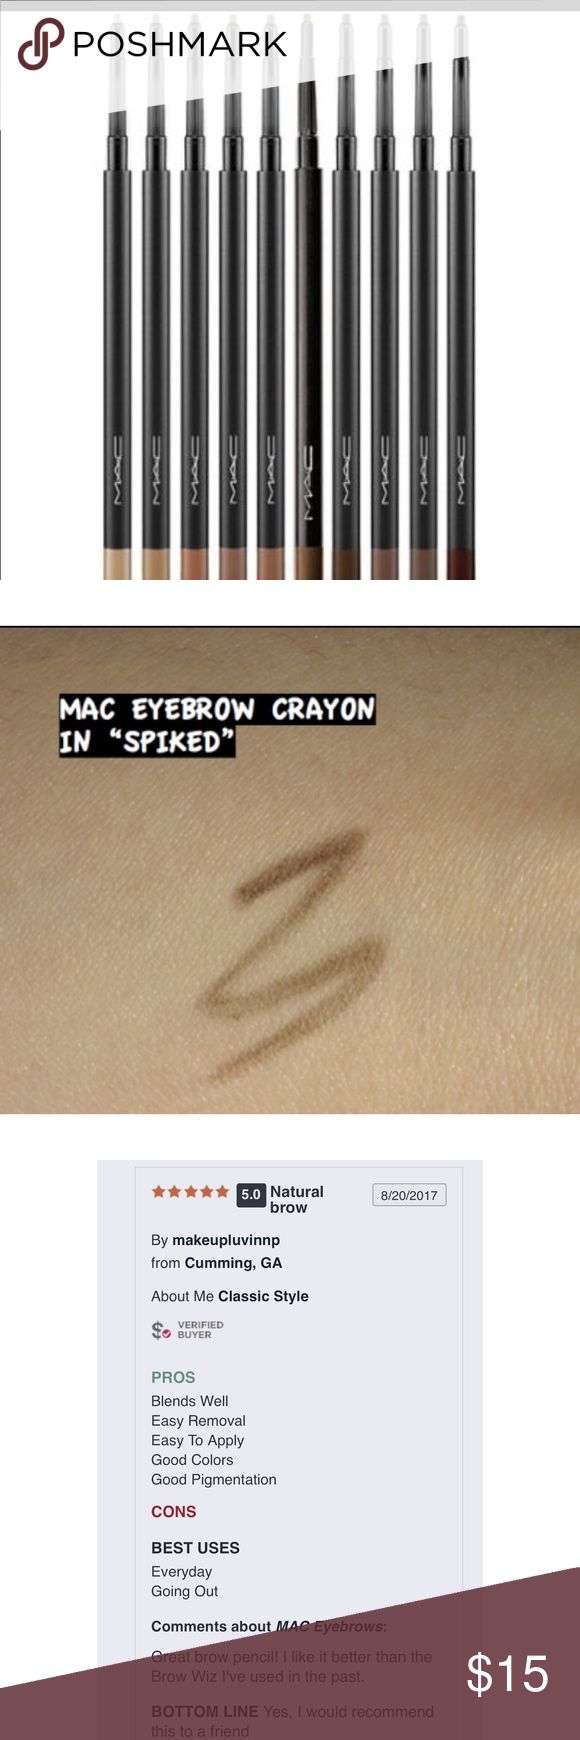 "Mac eyebrow pencil No sharpening, no tugging, glide-on formula makes brows perfectly finished in seconds! Even if you aren't a pro at brows, this gem will help you get there! I can do my brows in less than 2 minutes! VERY pigmented, so it lasts longer than my usual, (cough cough, Anastasia😂)! you just can't go wrong! Now you can have those Instagram brows you envy! Color is ""spiked"", med-med dark brown. NEW/UNUSED/FULL SIZE. price FIRM unless bundling. ❌trades/other sites. NO offers…"